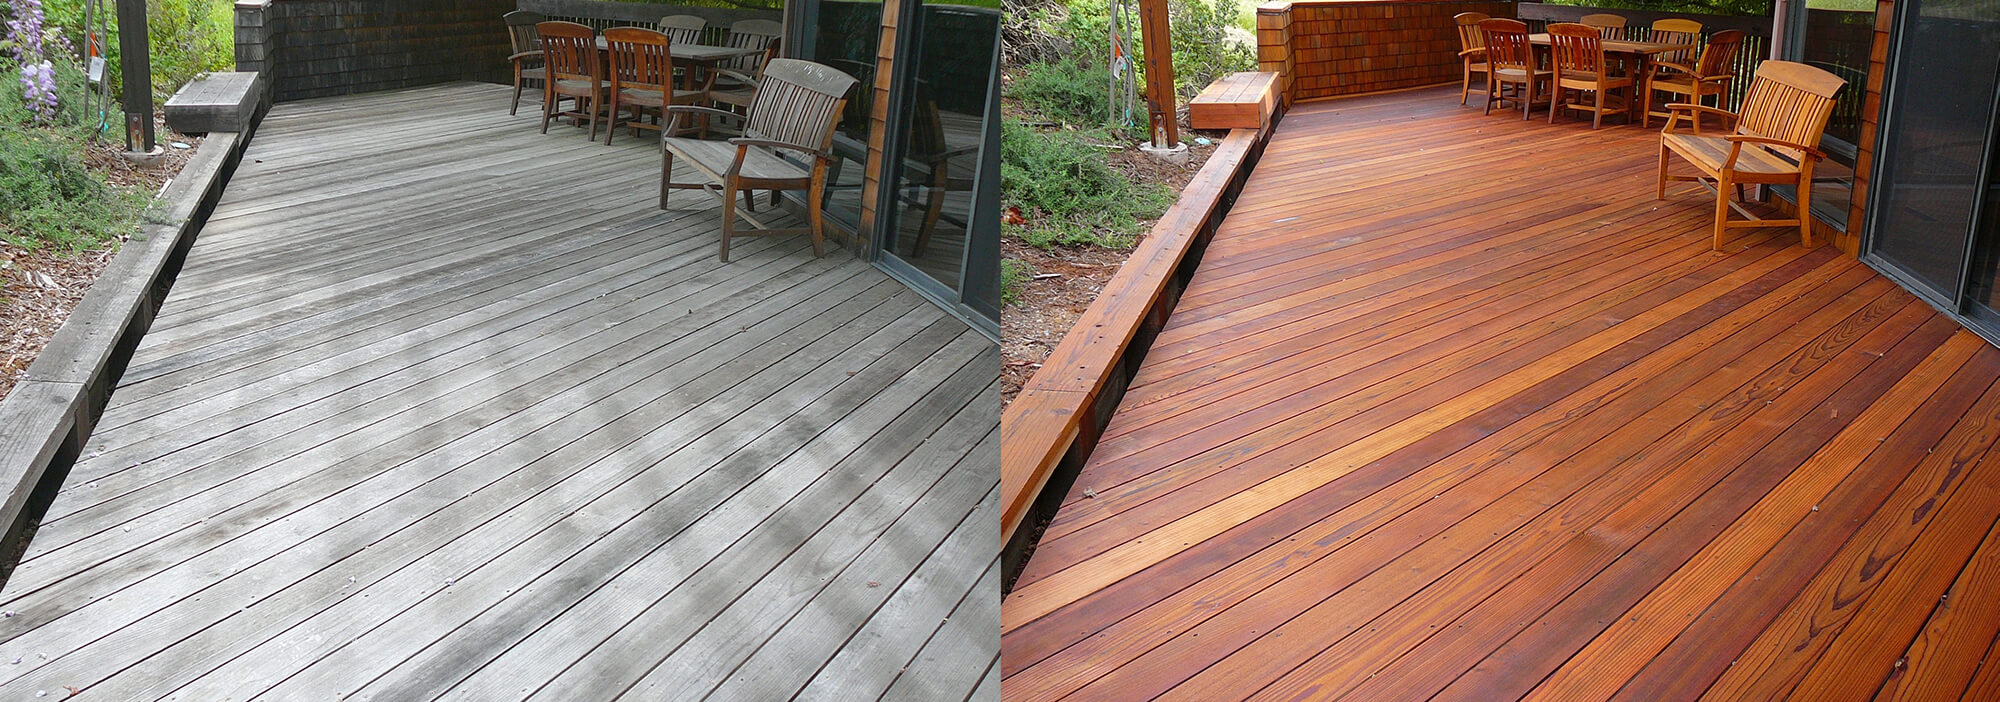 Redwood Deck Before After Cleaning And Preserving Cal Preserving